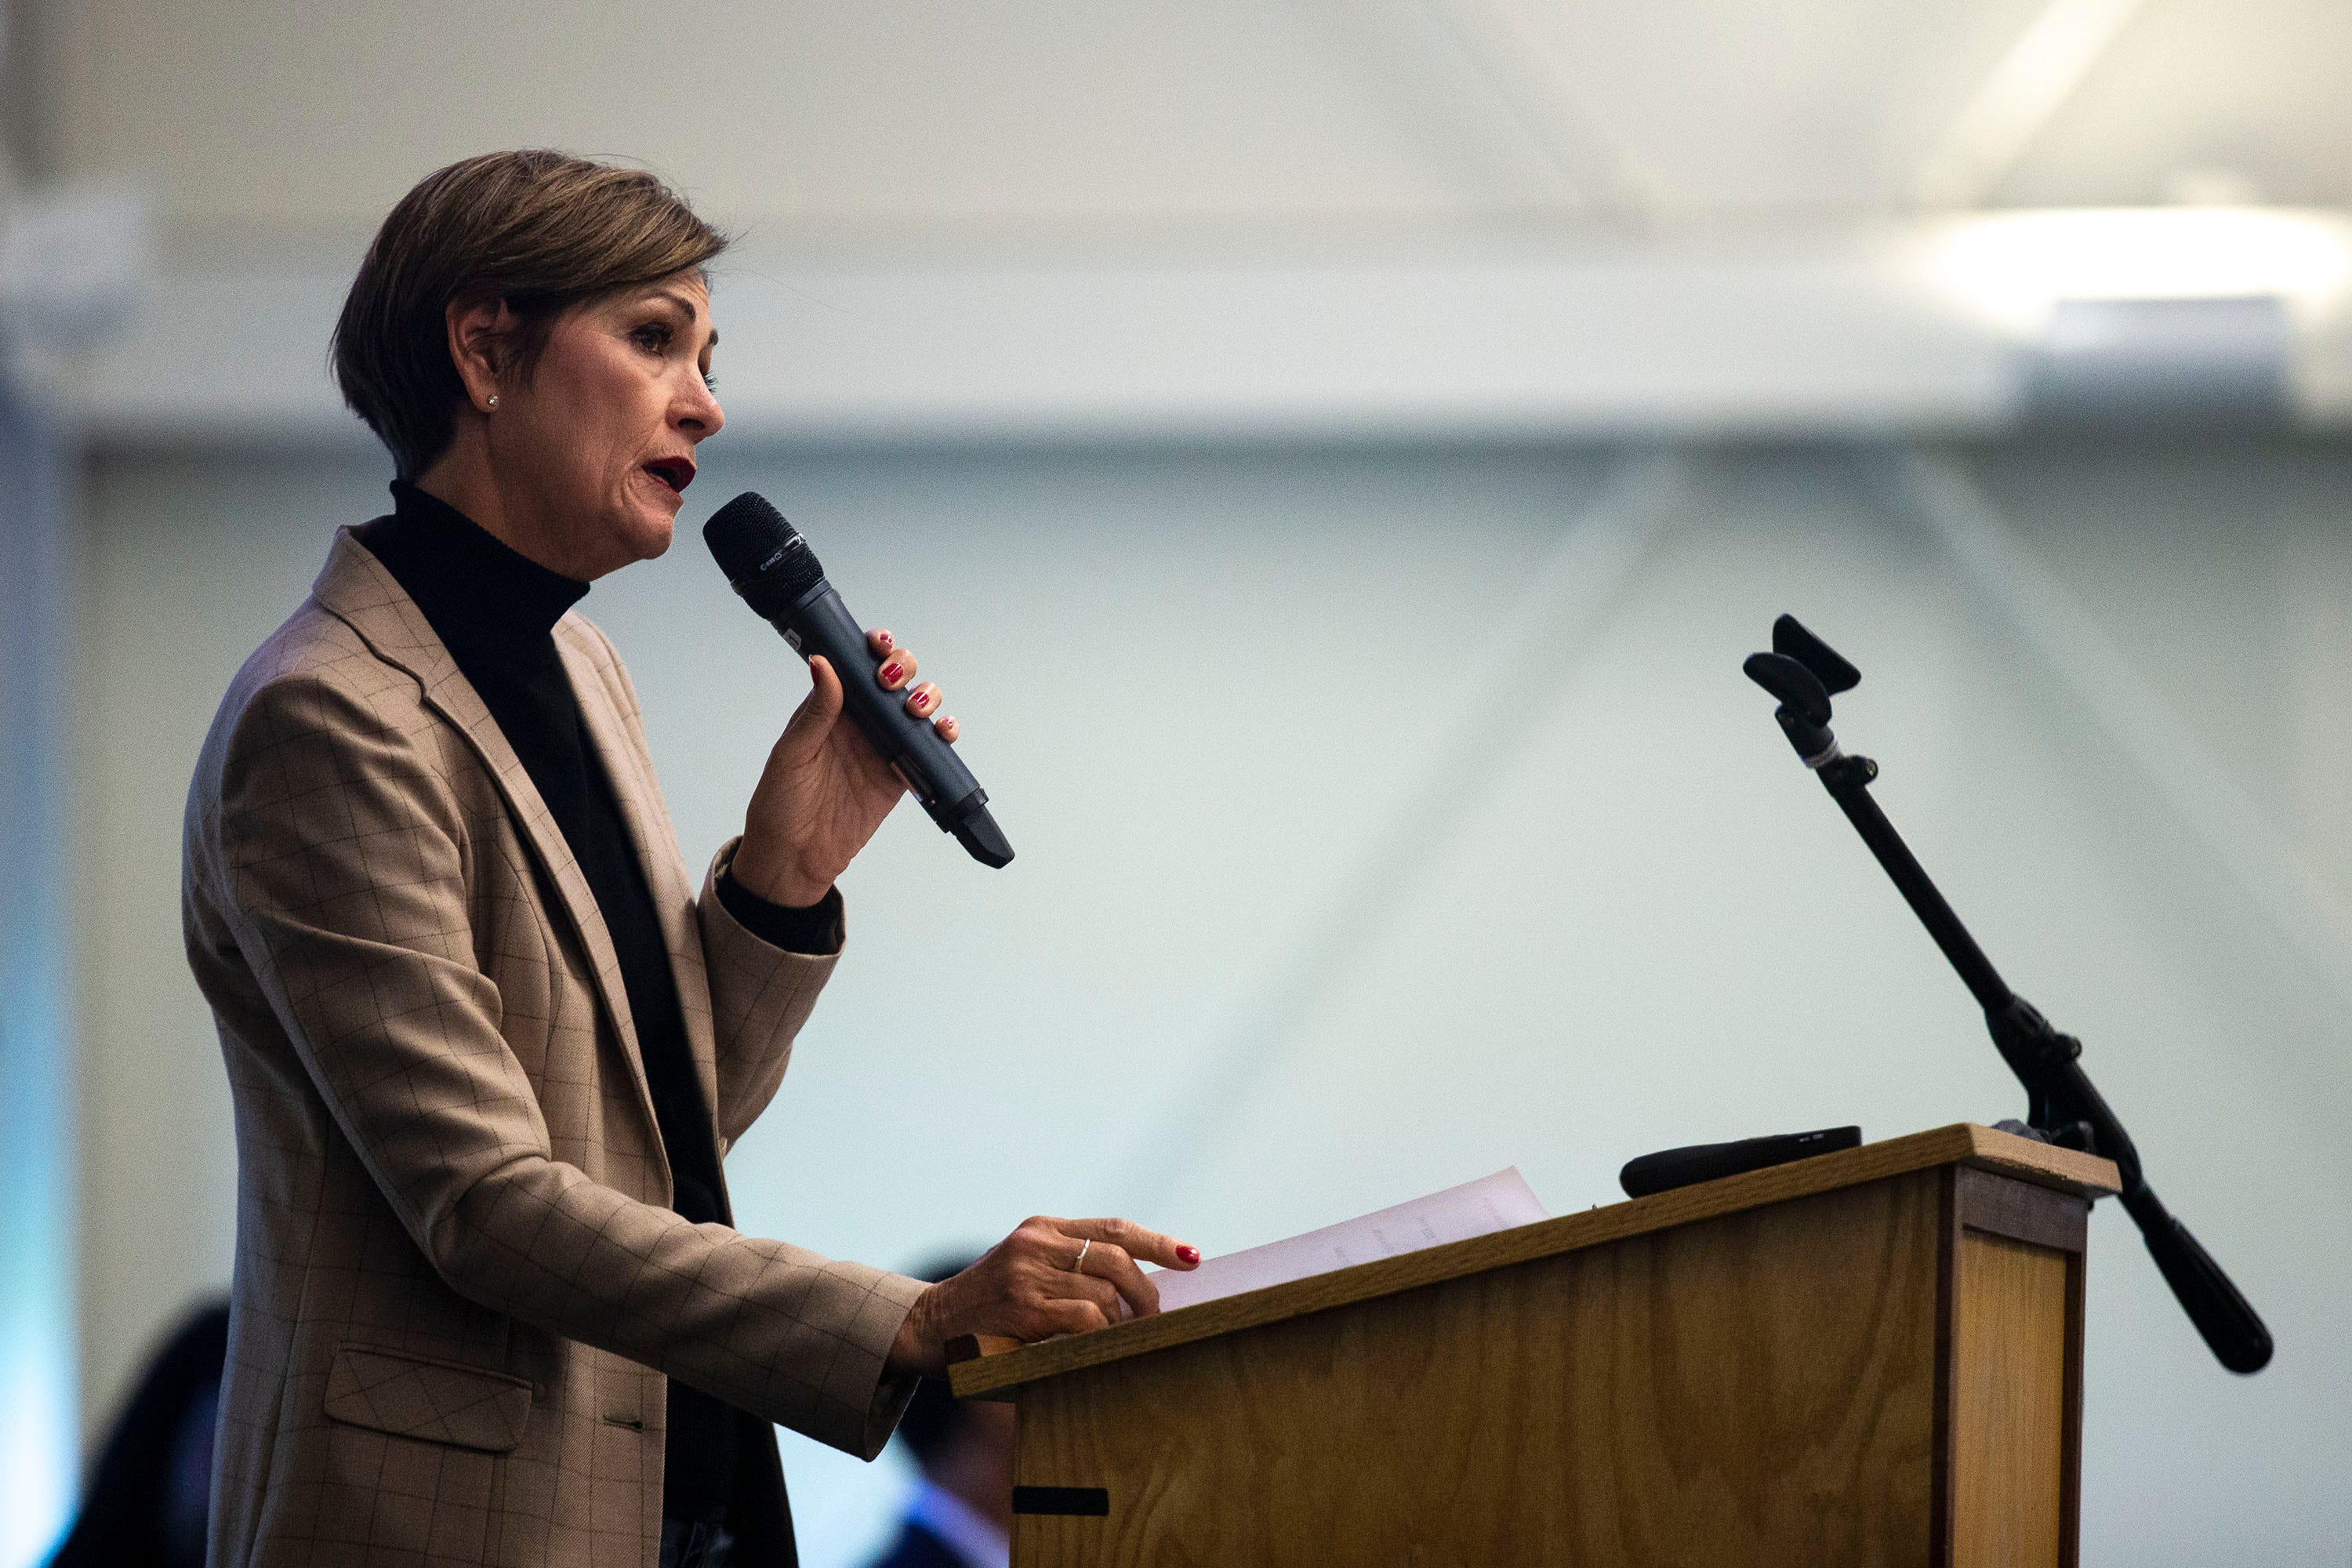 Kim Reynolds says she will continue to push efforts to give offenders a 'second chance'; announces new working group